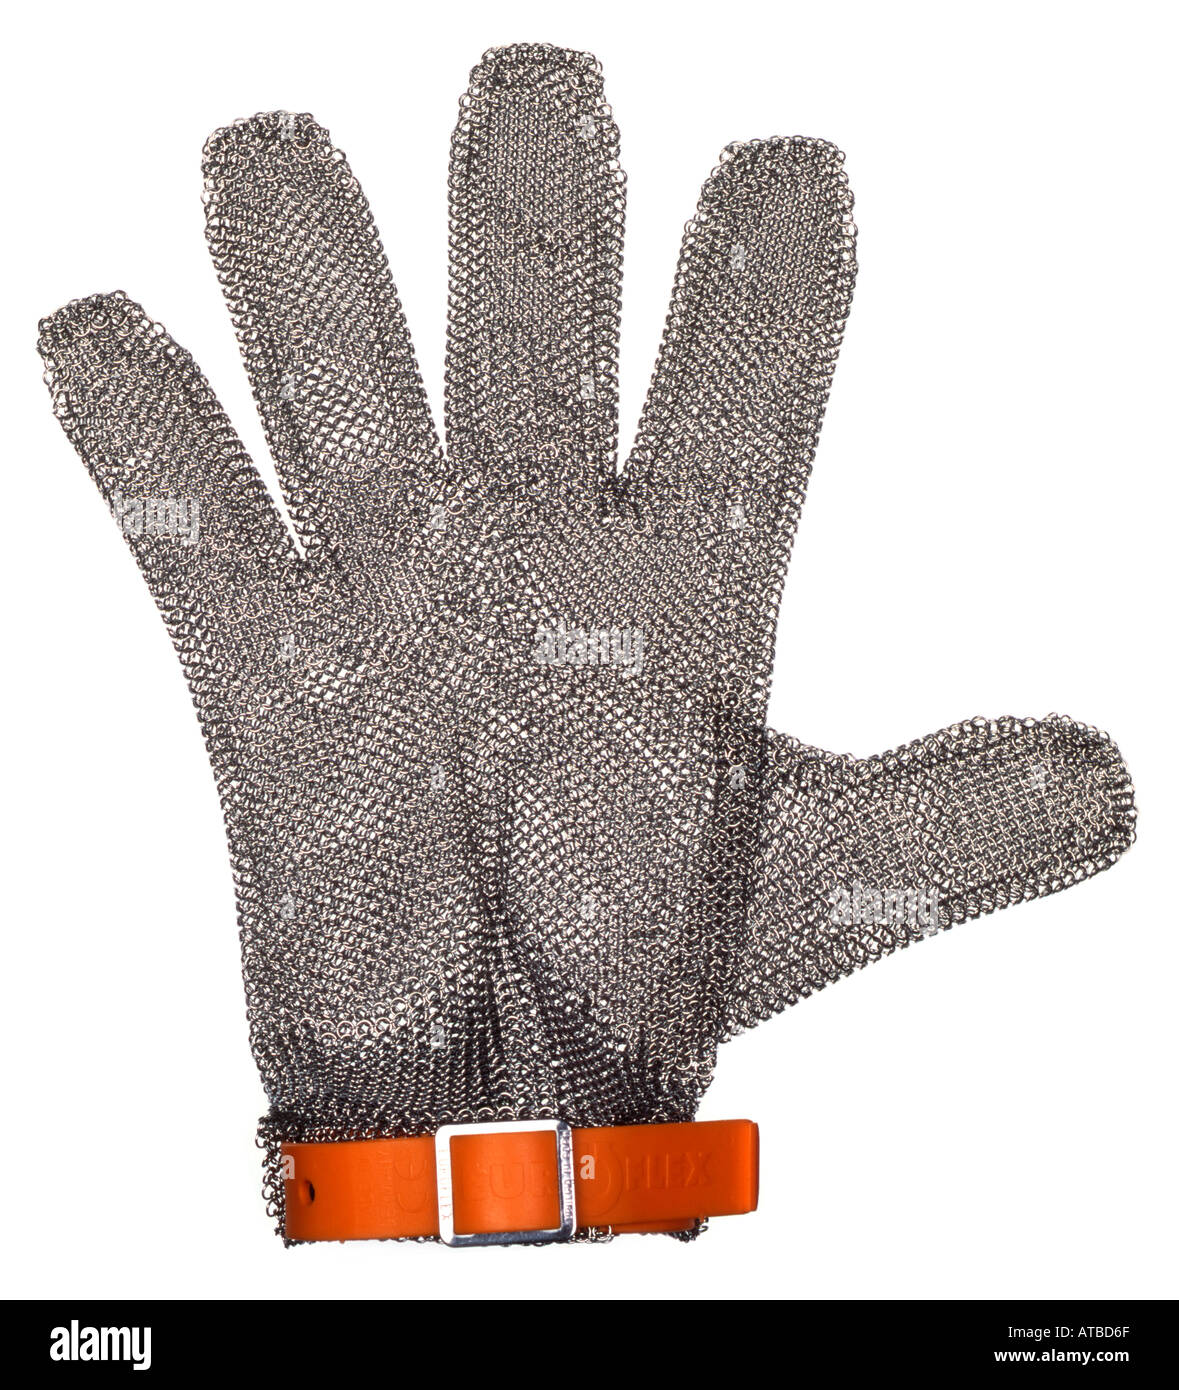 metal cutting and oyster glove like chain mail stock photo  - stock photo  metal cutting and oyster glove like chain mail